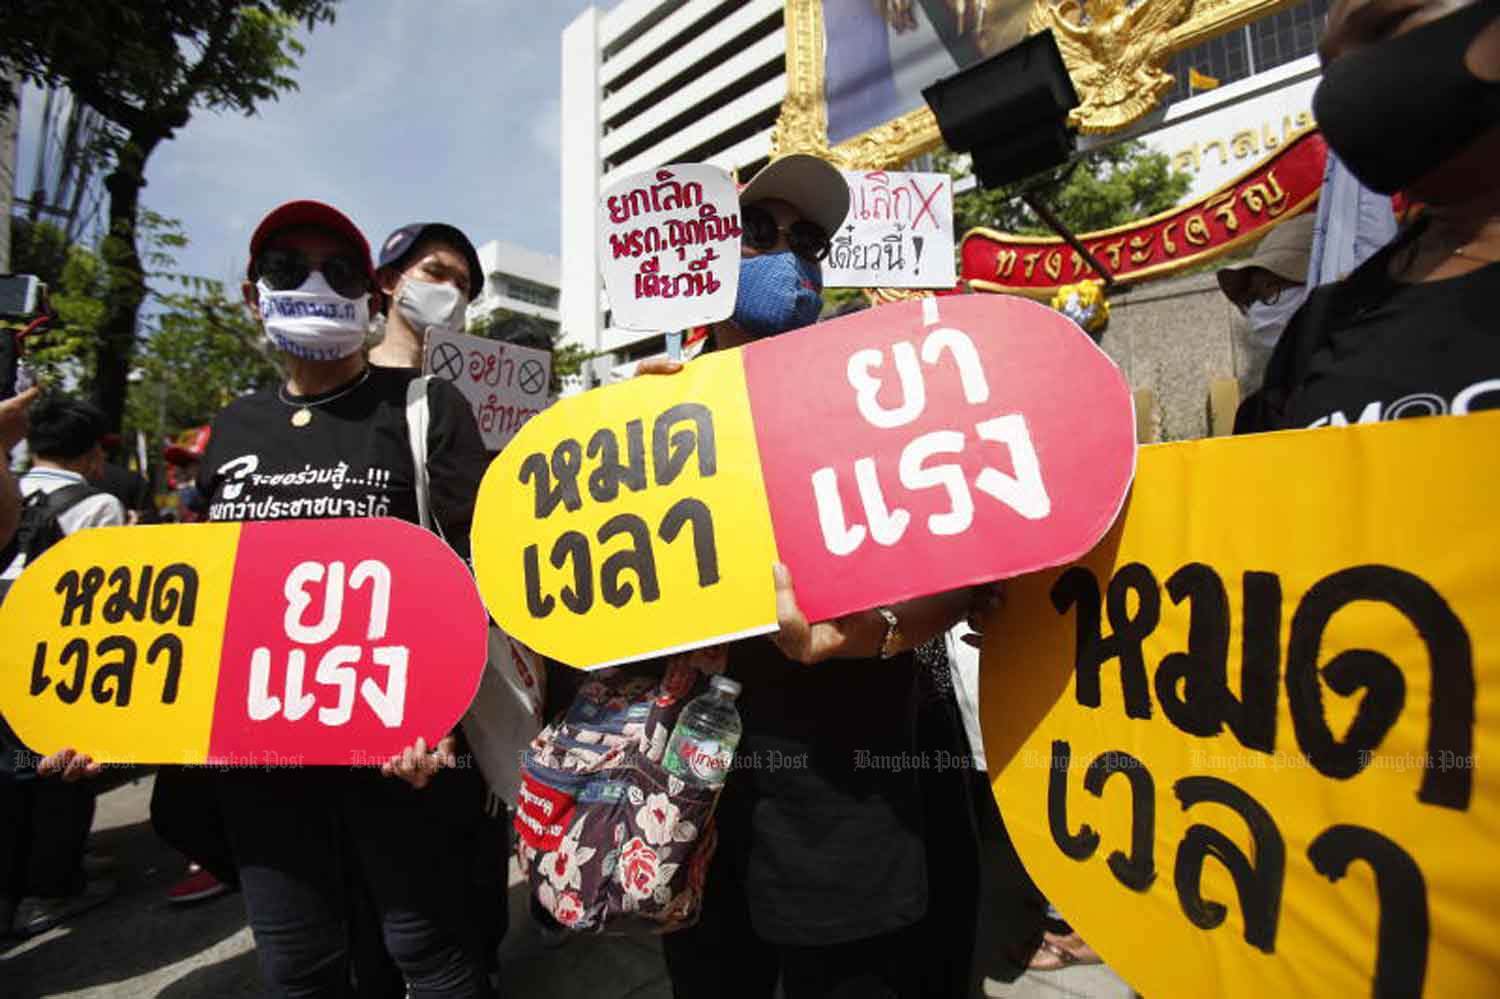 Activists gather at the Civil Court in Bangkok on Thursday, seeking an order that the government use normal laws to control Covid-19 instead of the executive emergency             decree. (Photo: Nutthawat Wicheanbut)